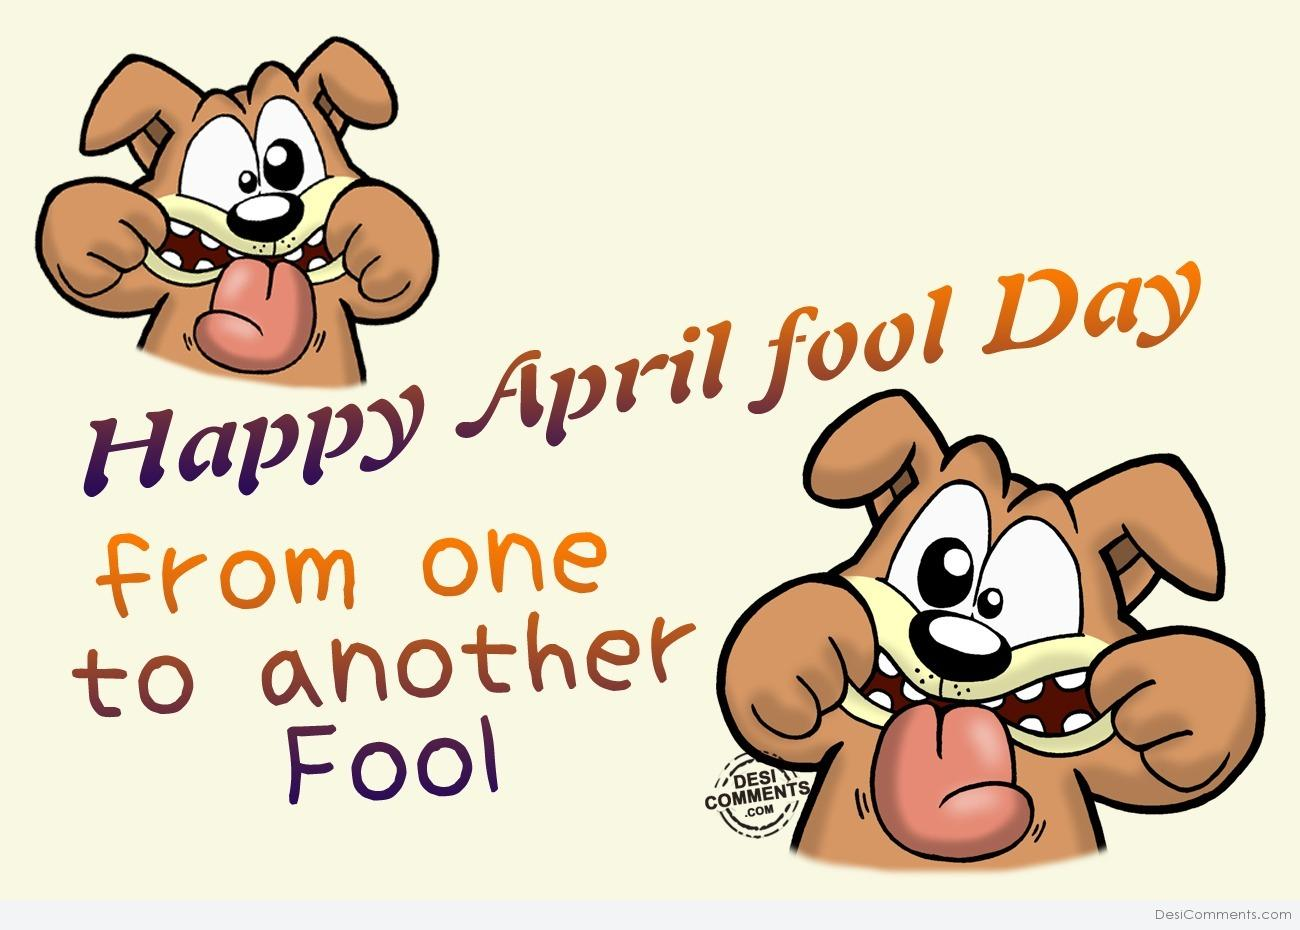 1st April Fool Day Wishes